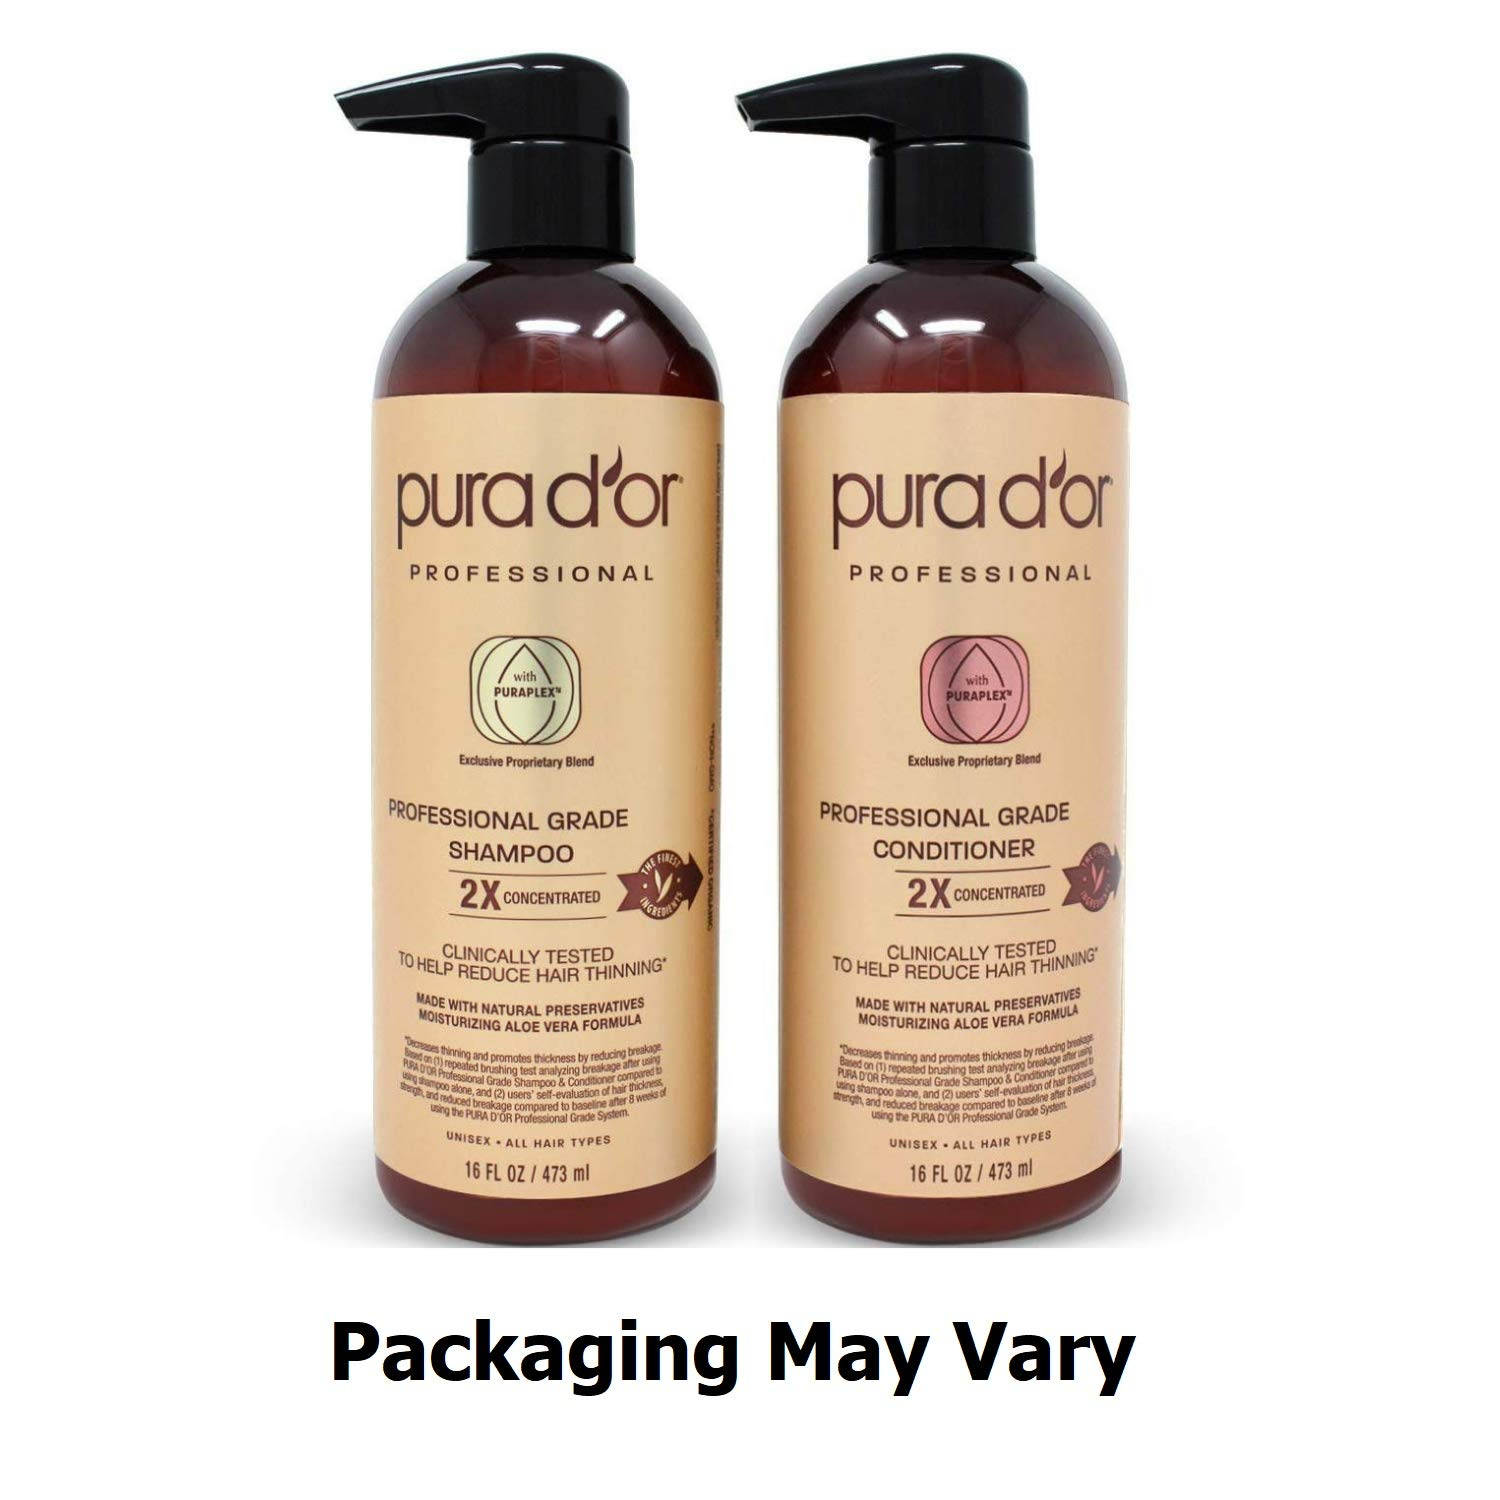 PURA D'OR Professional Grade Golden Biotin Anti-Hair Thinning 2X Concentrated Actives Shampoo & Conditioner Set, Sulfate Free, Natural Ingredients, Clinically Tested, Men & Women (Packaging may vary) by PURA D'OR (Image #2)